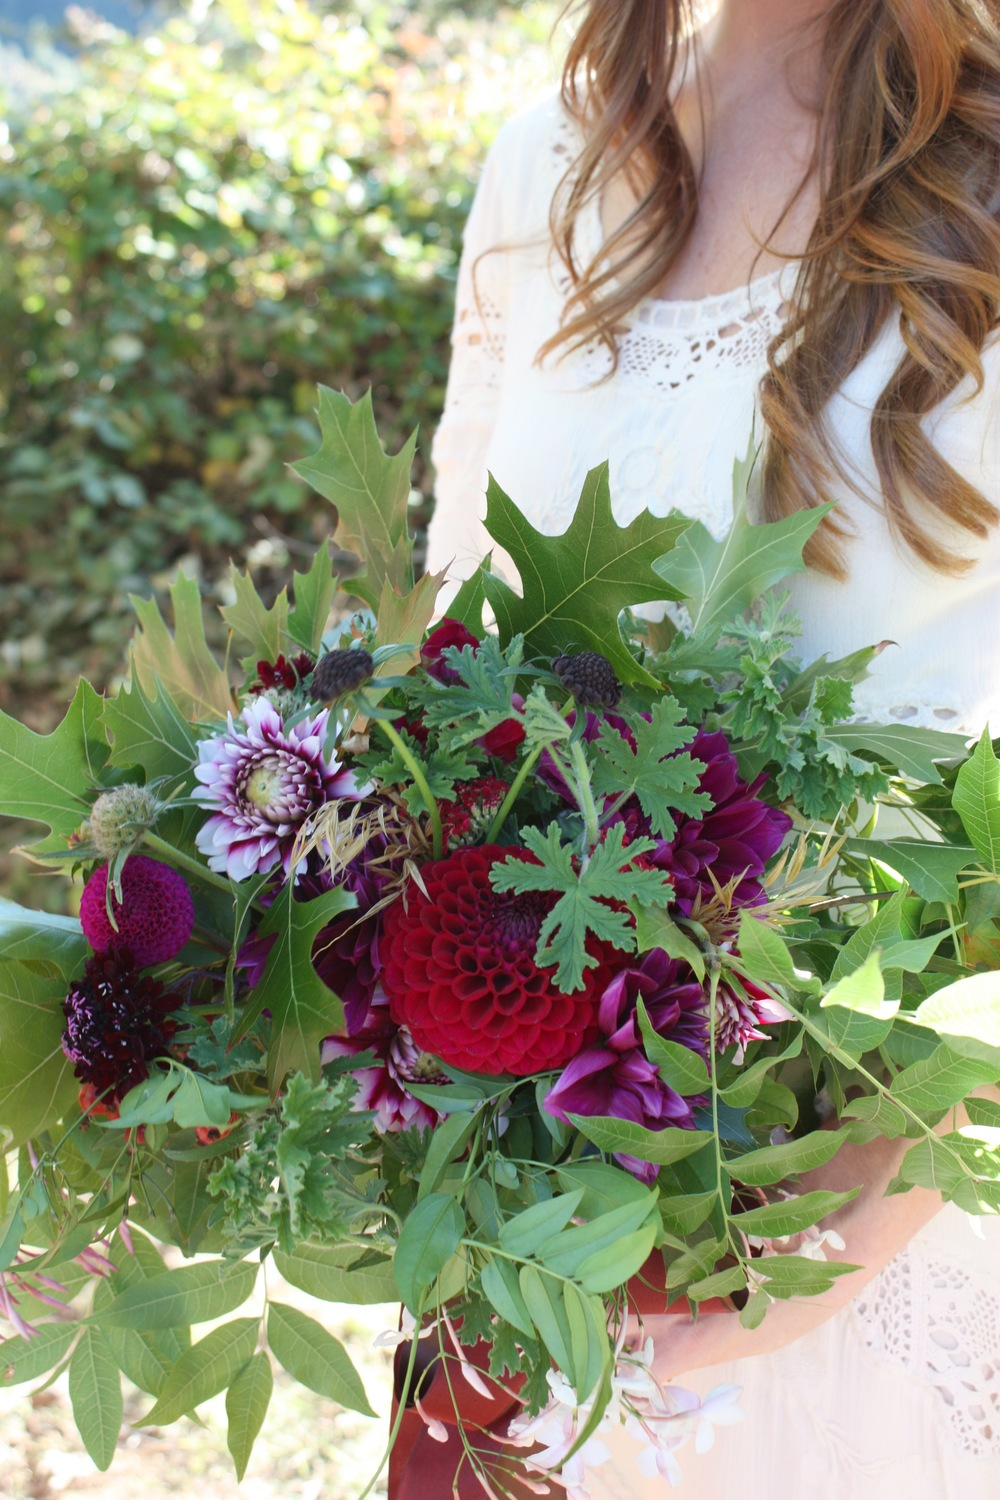 Marisa's Ranch wedding bouquet was a loose mix of all local organic blooms and foliage. Include were five different varieties of dahlias, scabiosa, pods and blooms, sweet smelling jasmine, and geranium and finished with oak leaves, Chinese pistache leaaves and grasses.